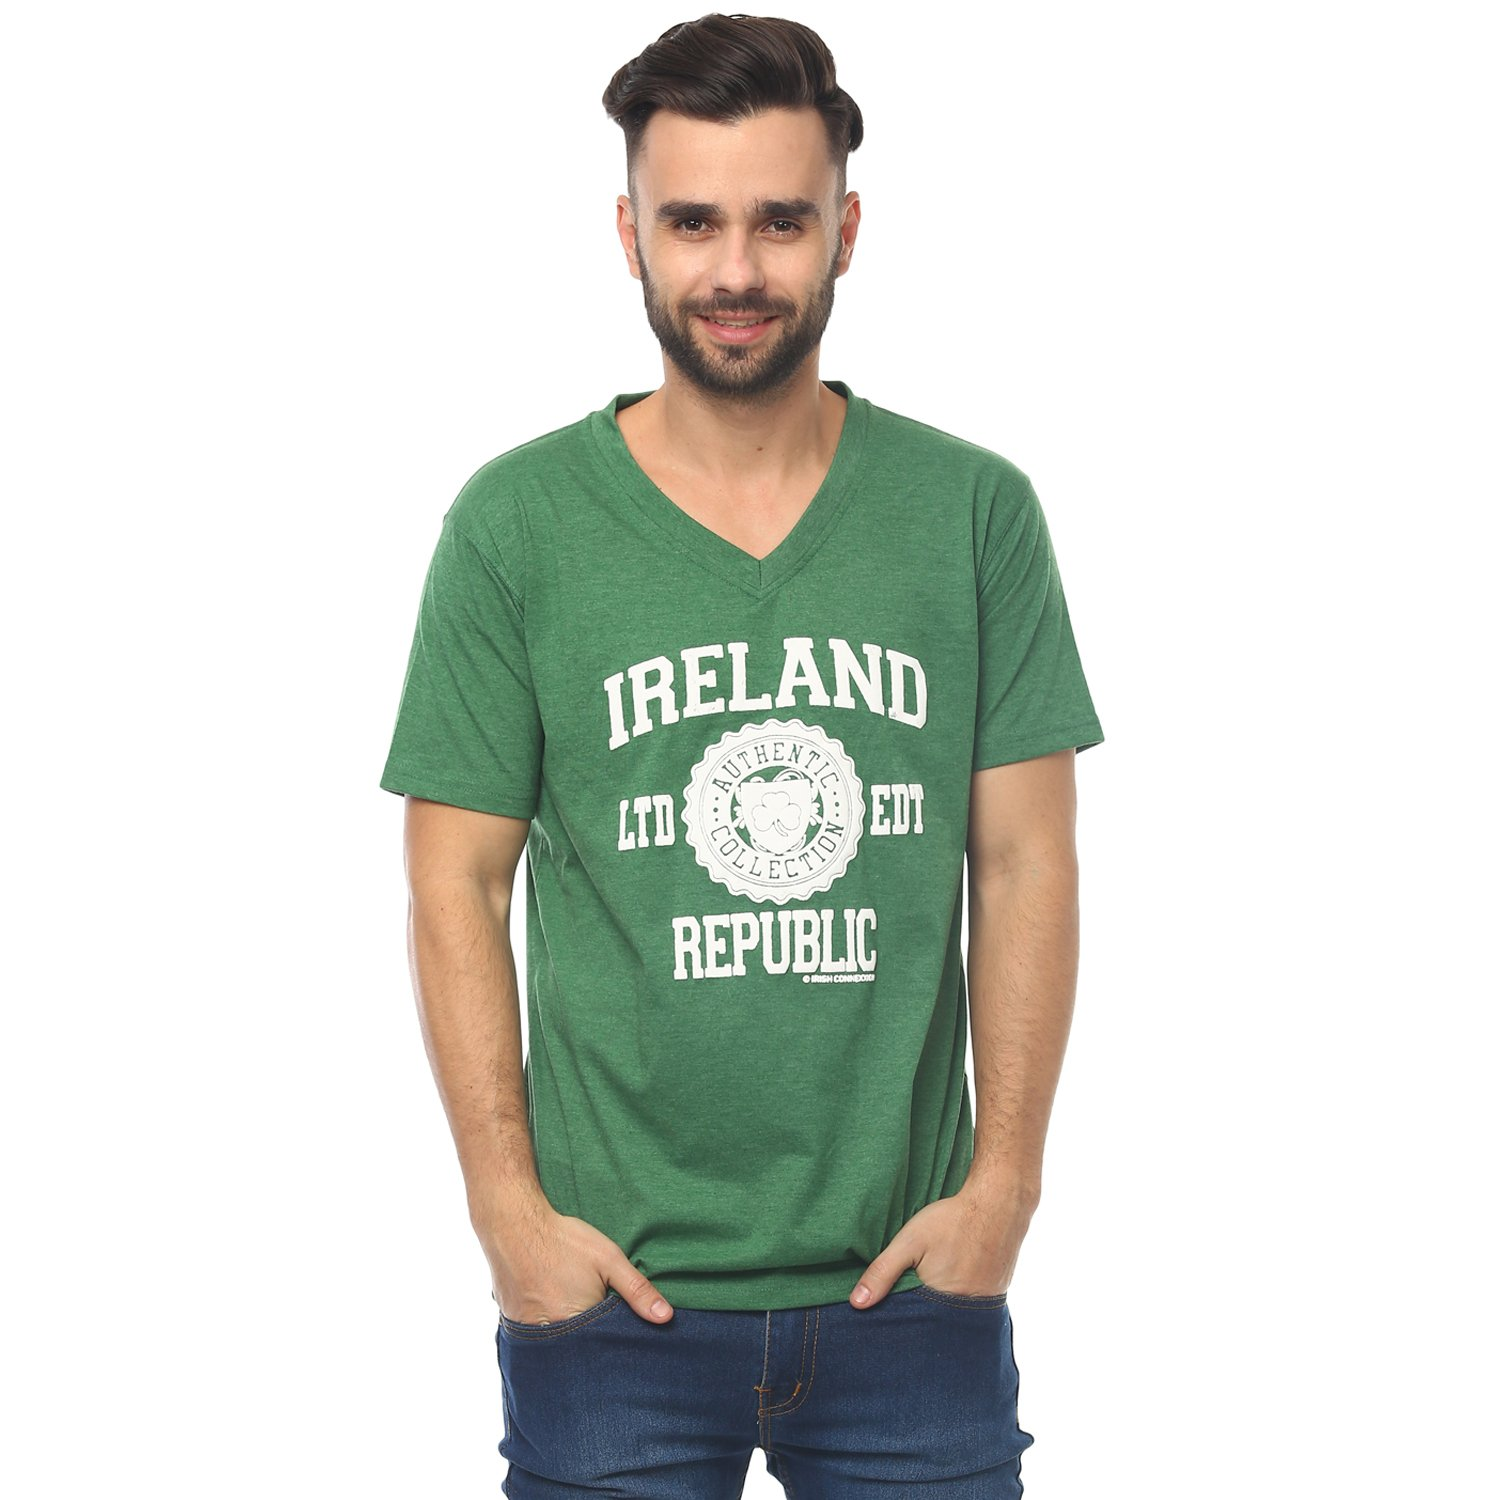 T-Shirt With Ireland Republic Est. 1916 Varsity Shield, Green Colour